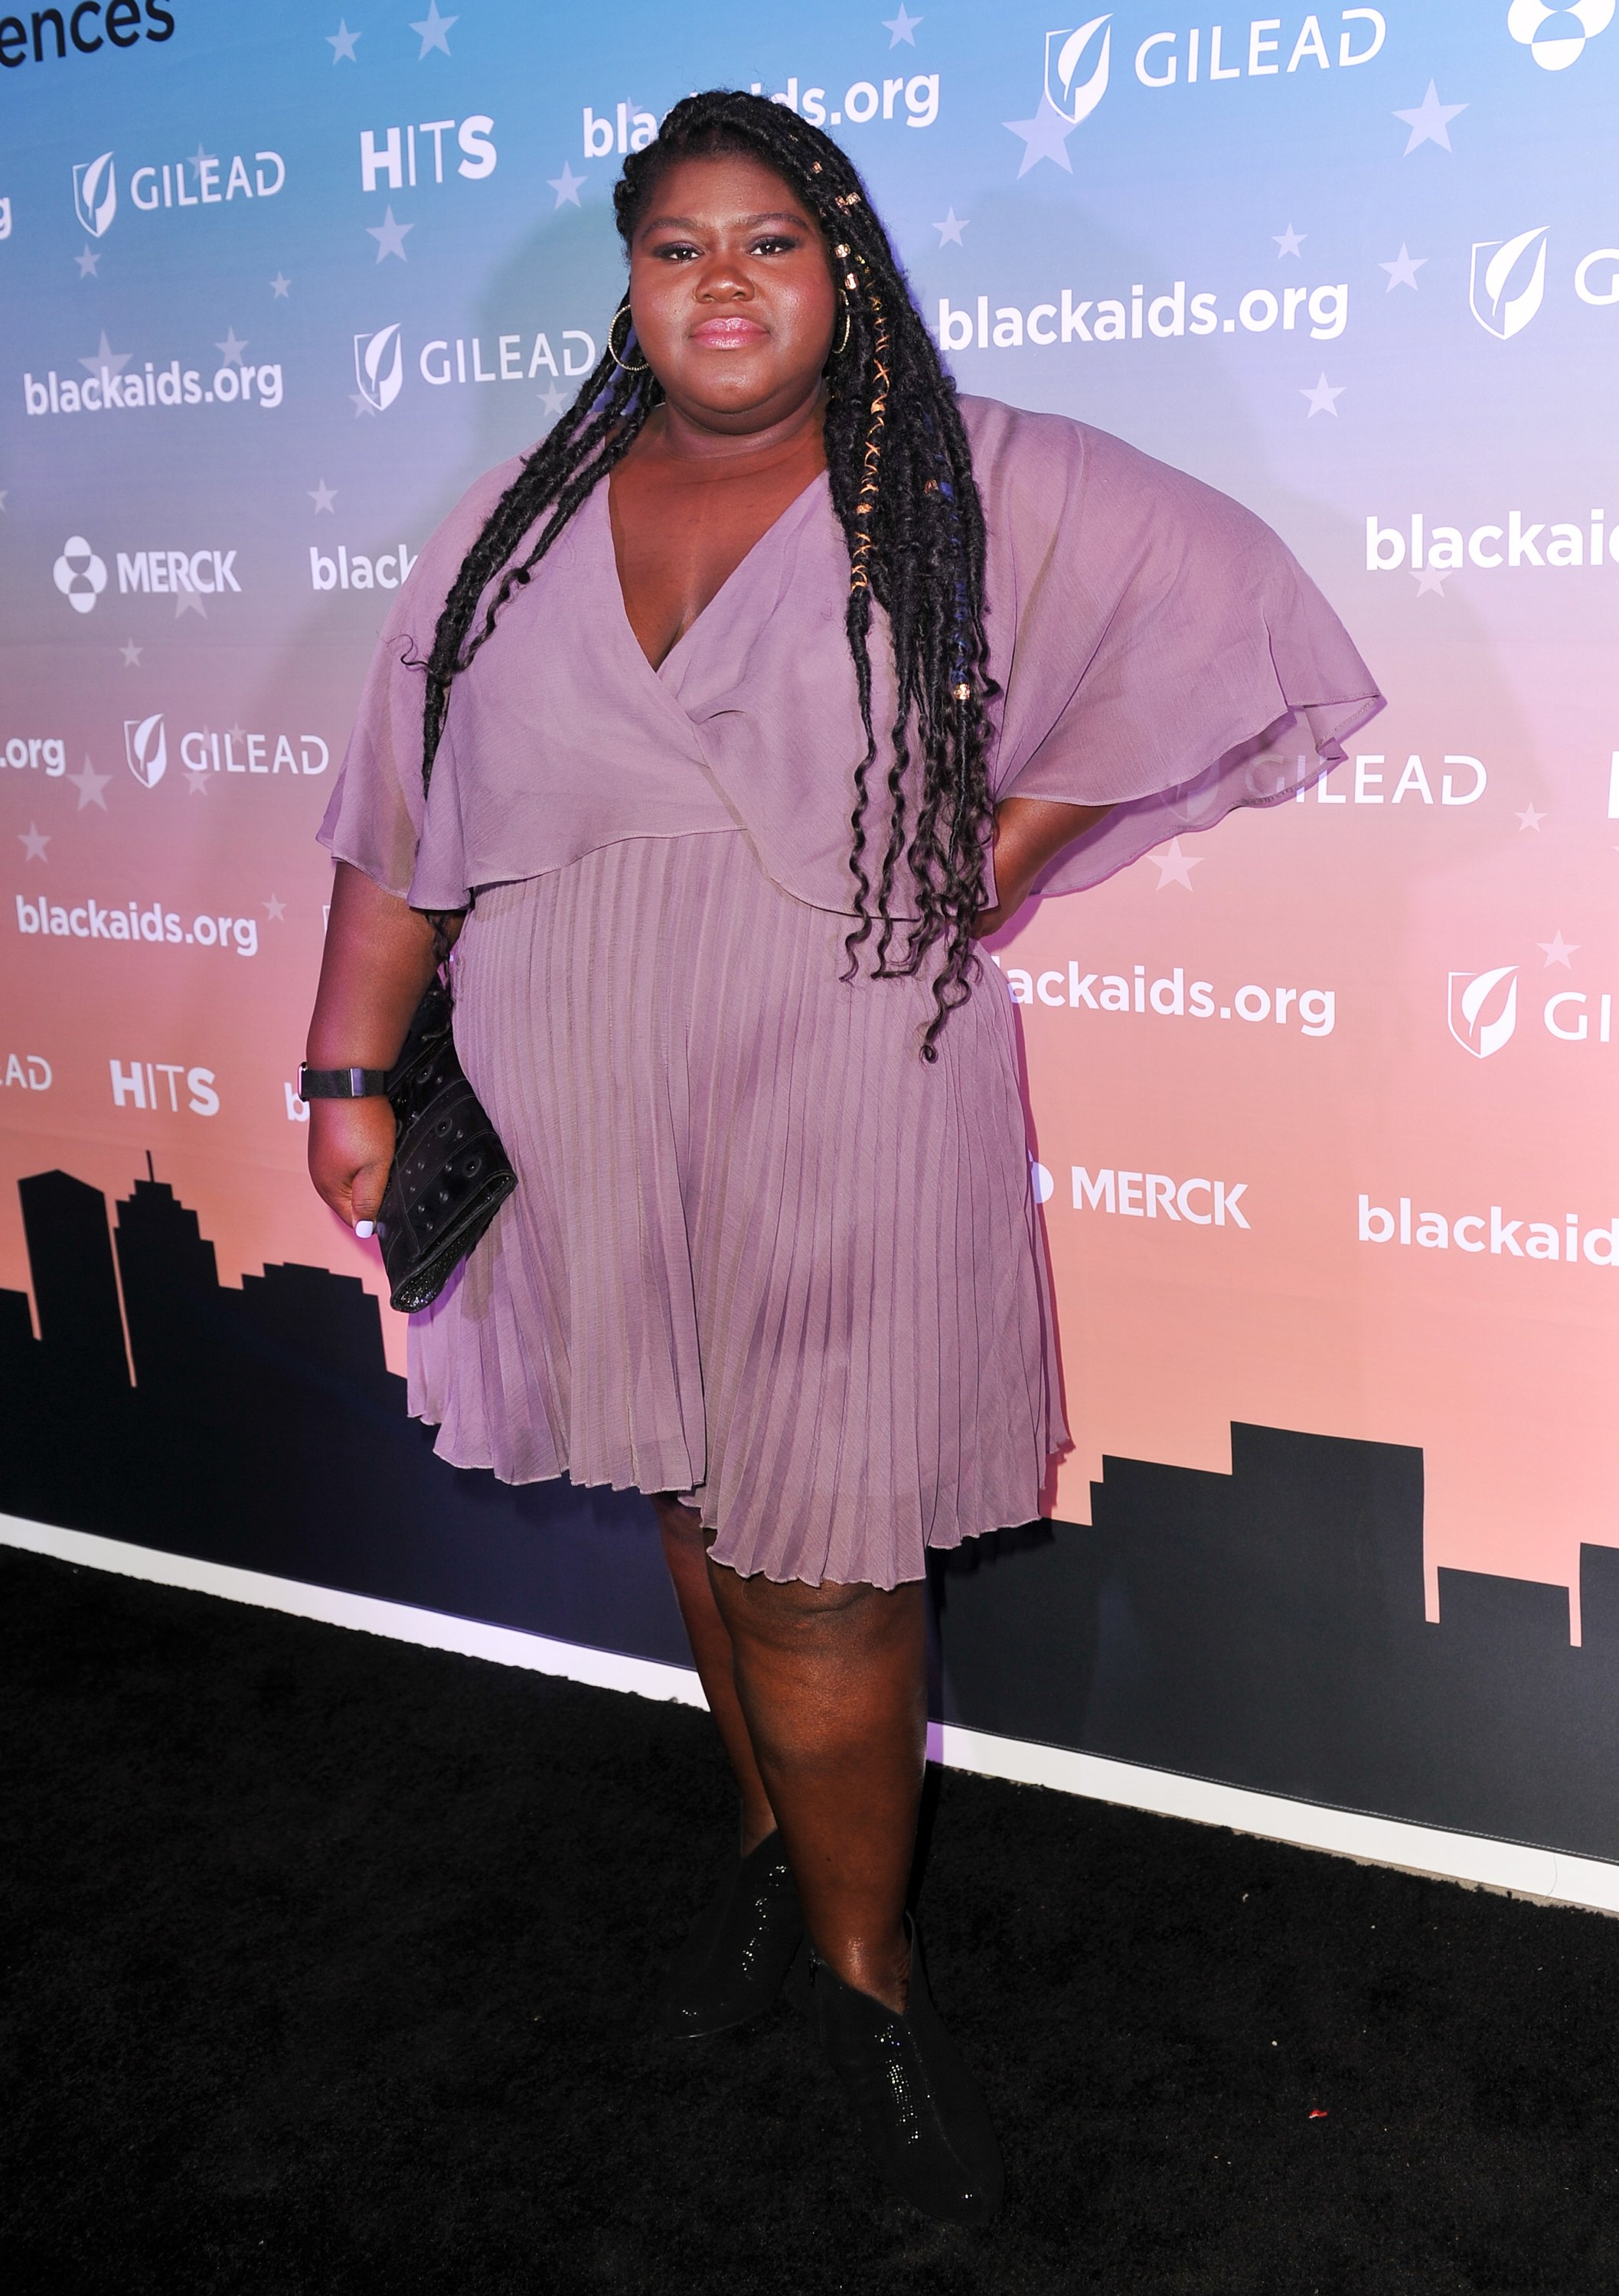 Gabourey Sidibe attends the Black AIDS Institute's 2018 Heroes in The Struggle Gala at California African American Museum in Los Angeles on December 01, 2018   Photo: Getty Images